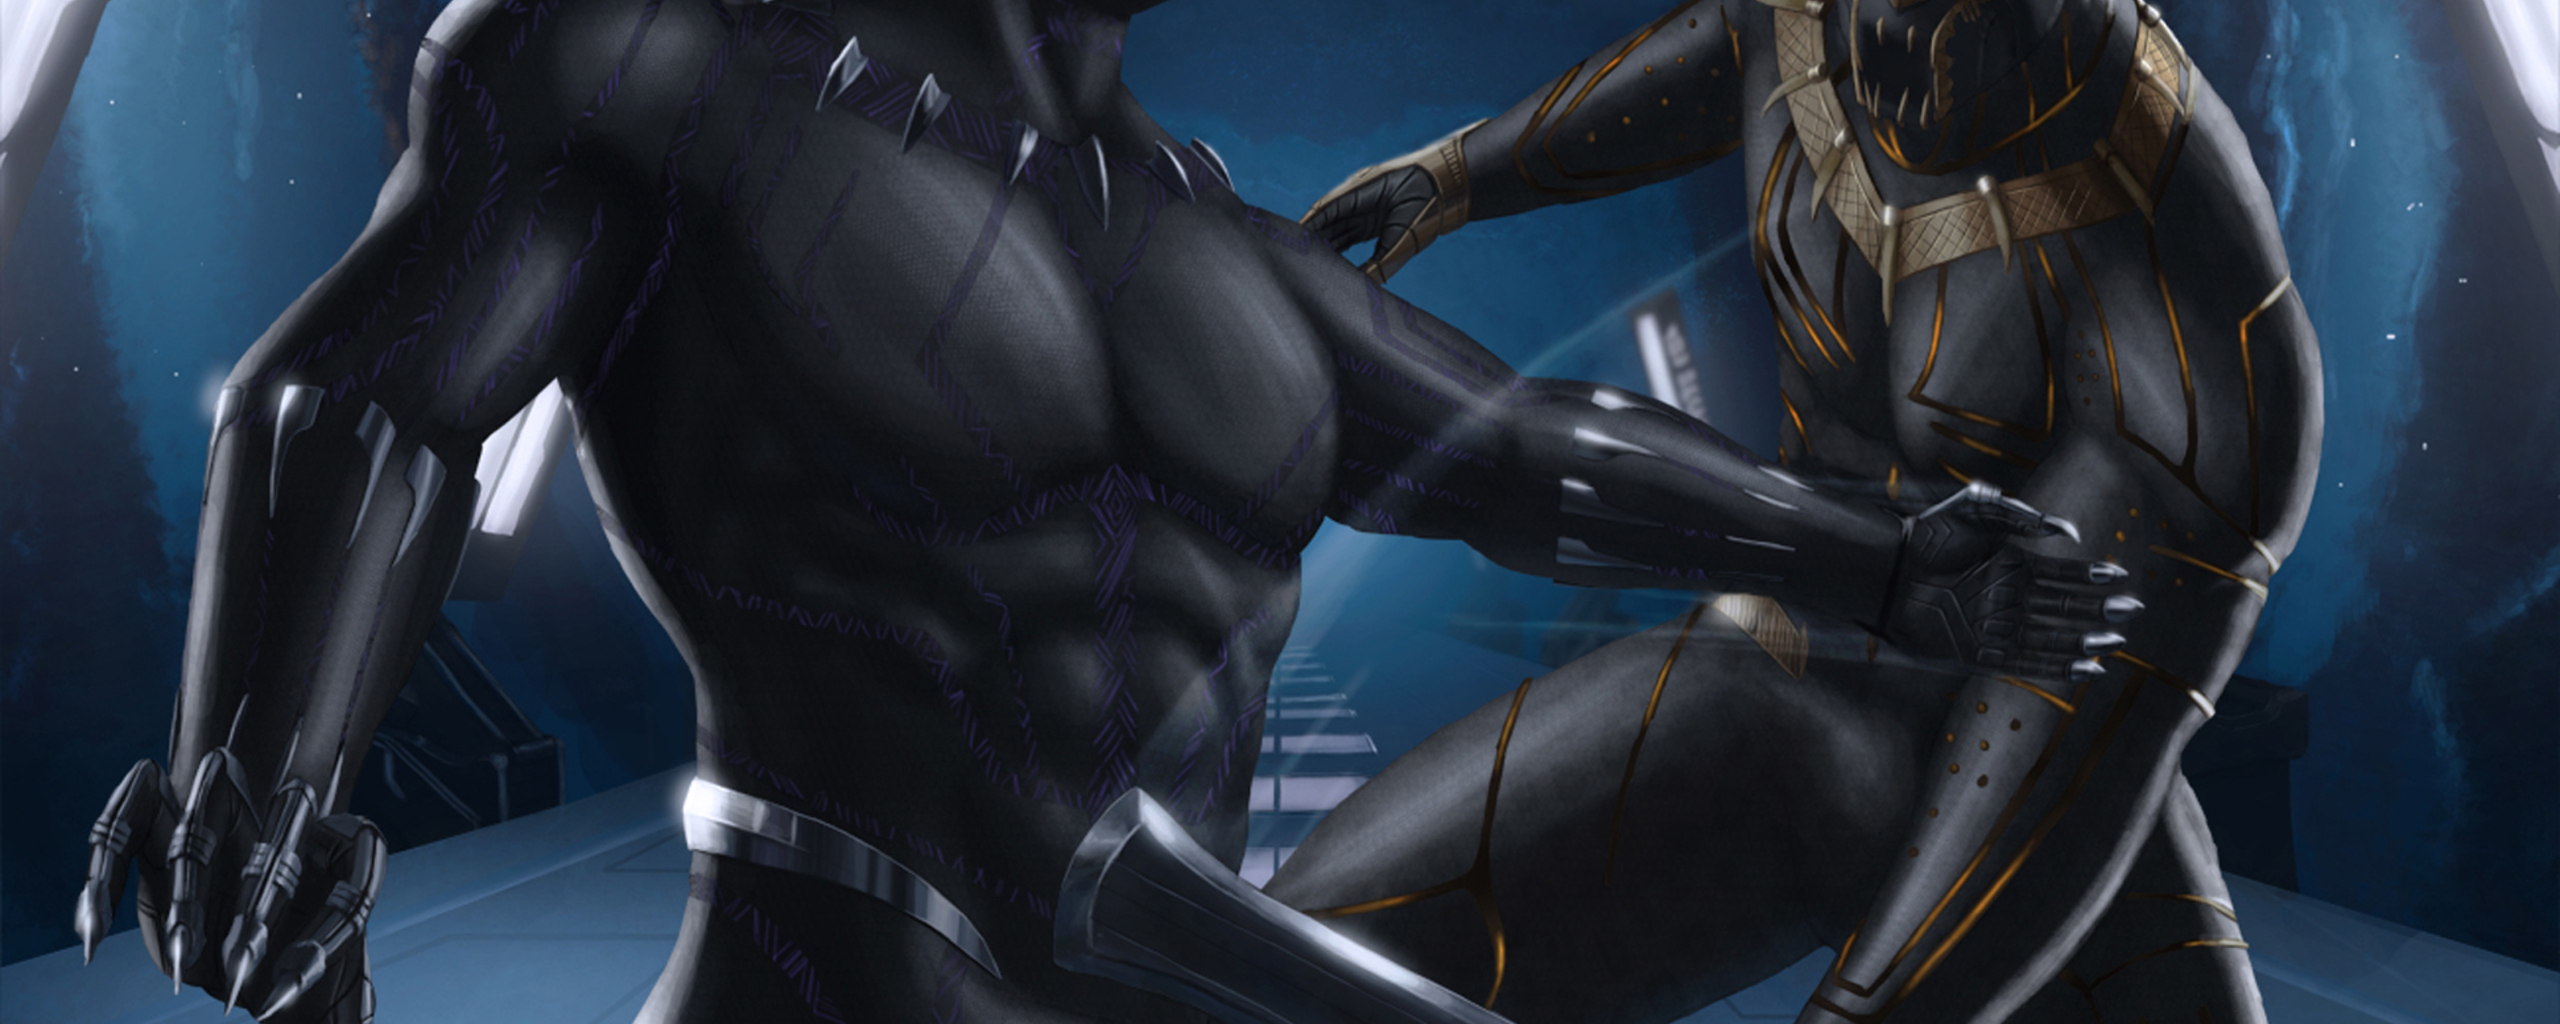 2560x1024 Black Panther And Erik Killmonger Artwork 2560x1024 Resolution HD 4k Wallpapers, Images, Backgrounds, Photos and Pictures